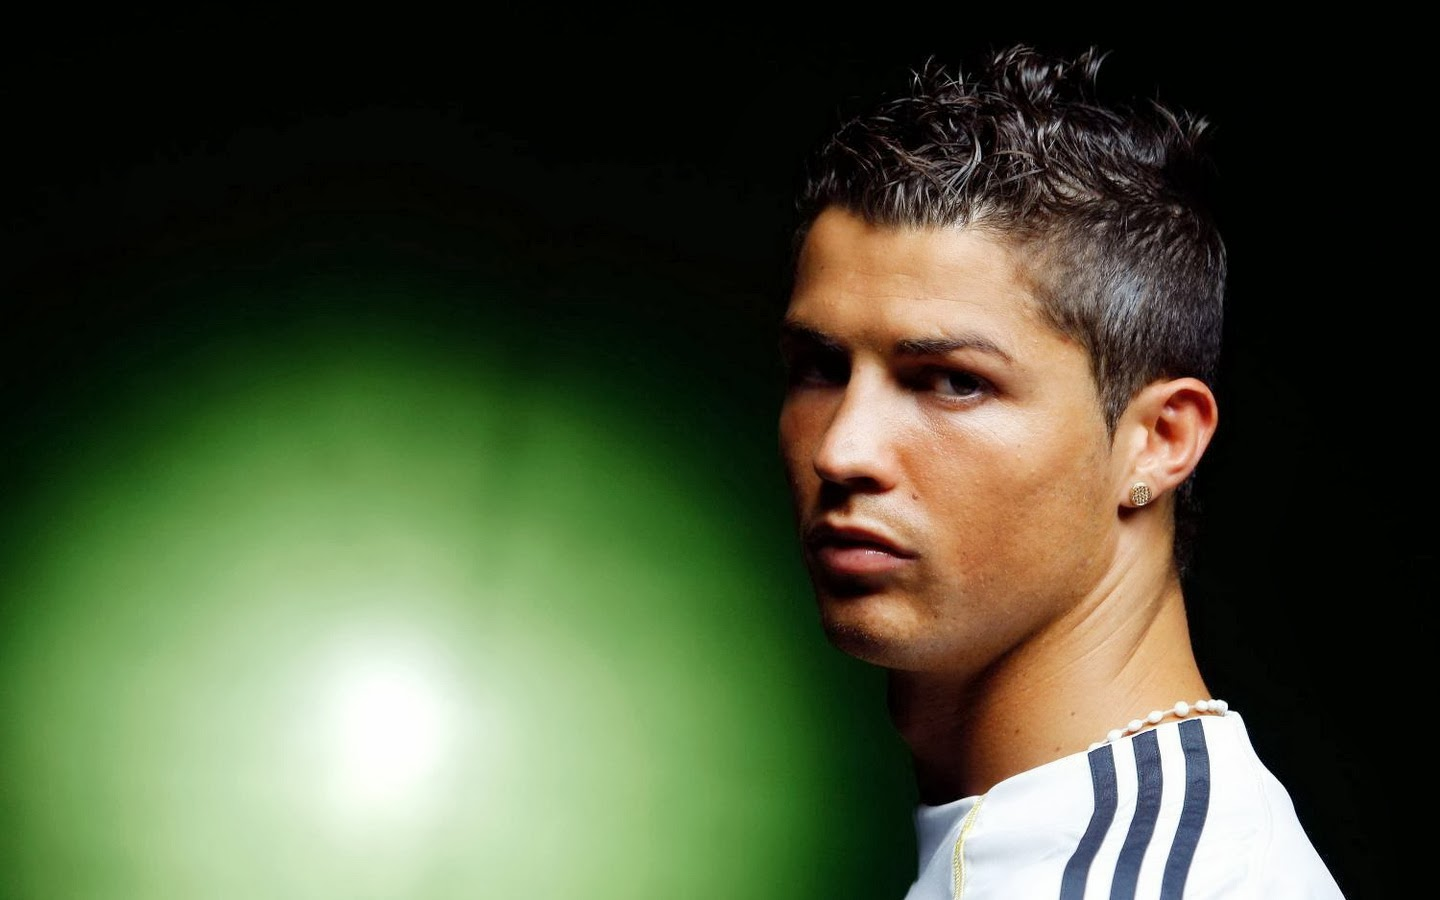 cristiano ronaldo wallpaper 1080p wallpapersafari